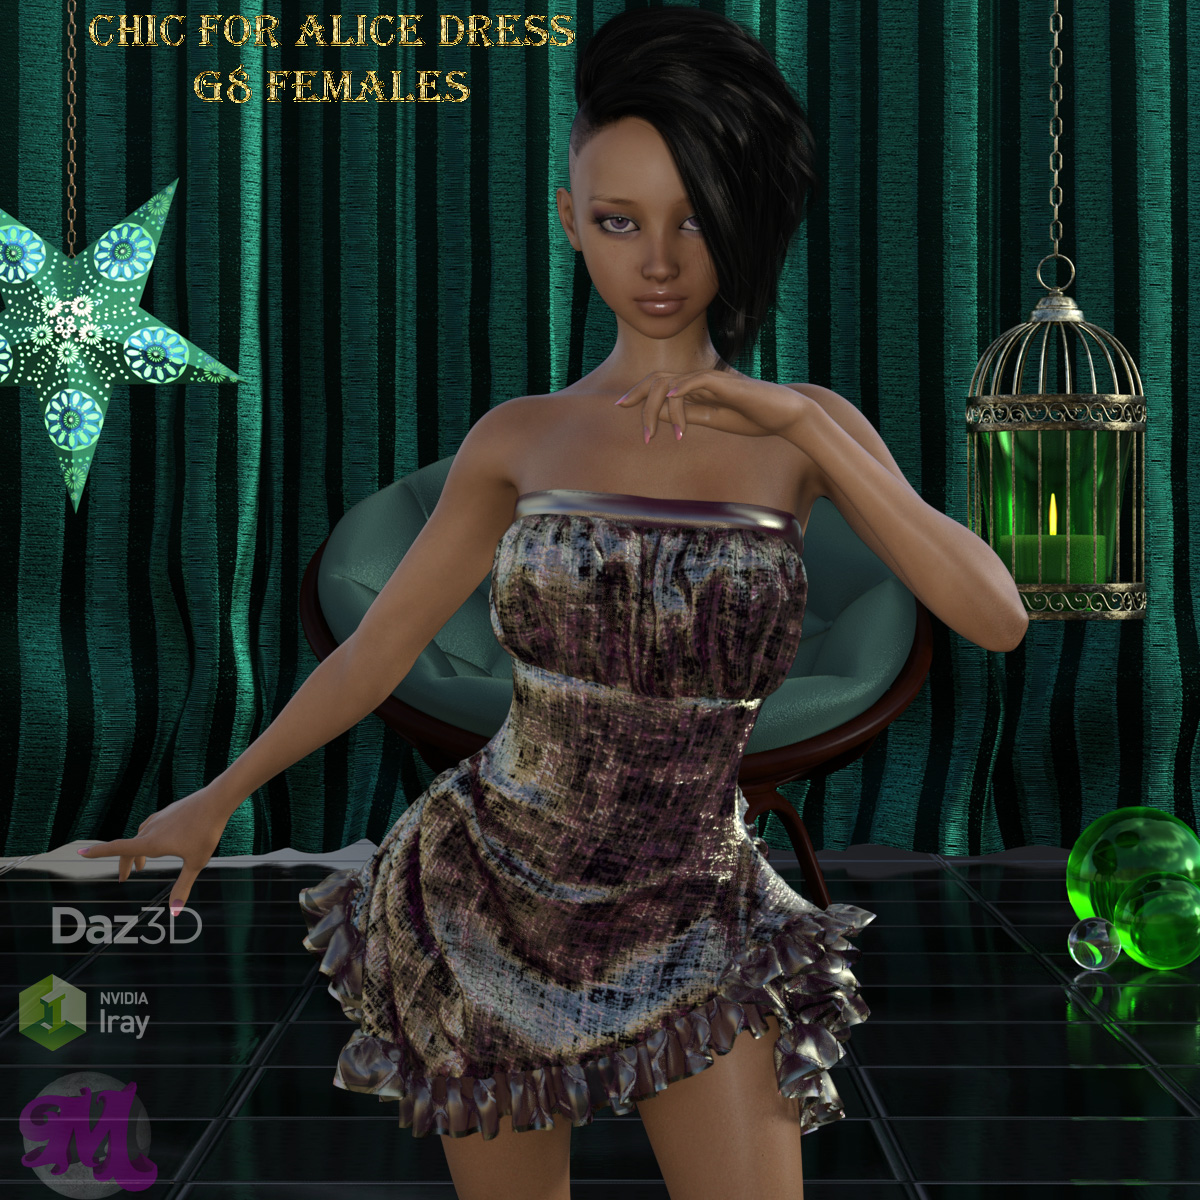 Chic for Alice Dress G8 Females by Moonlight001